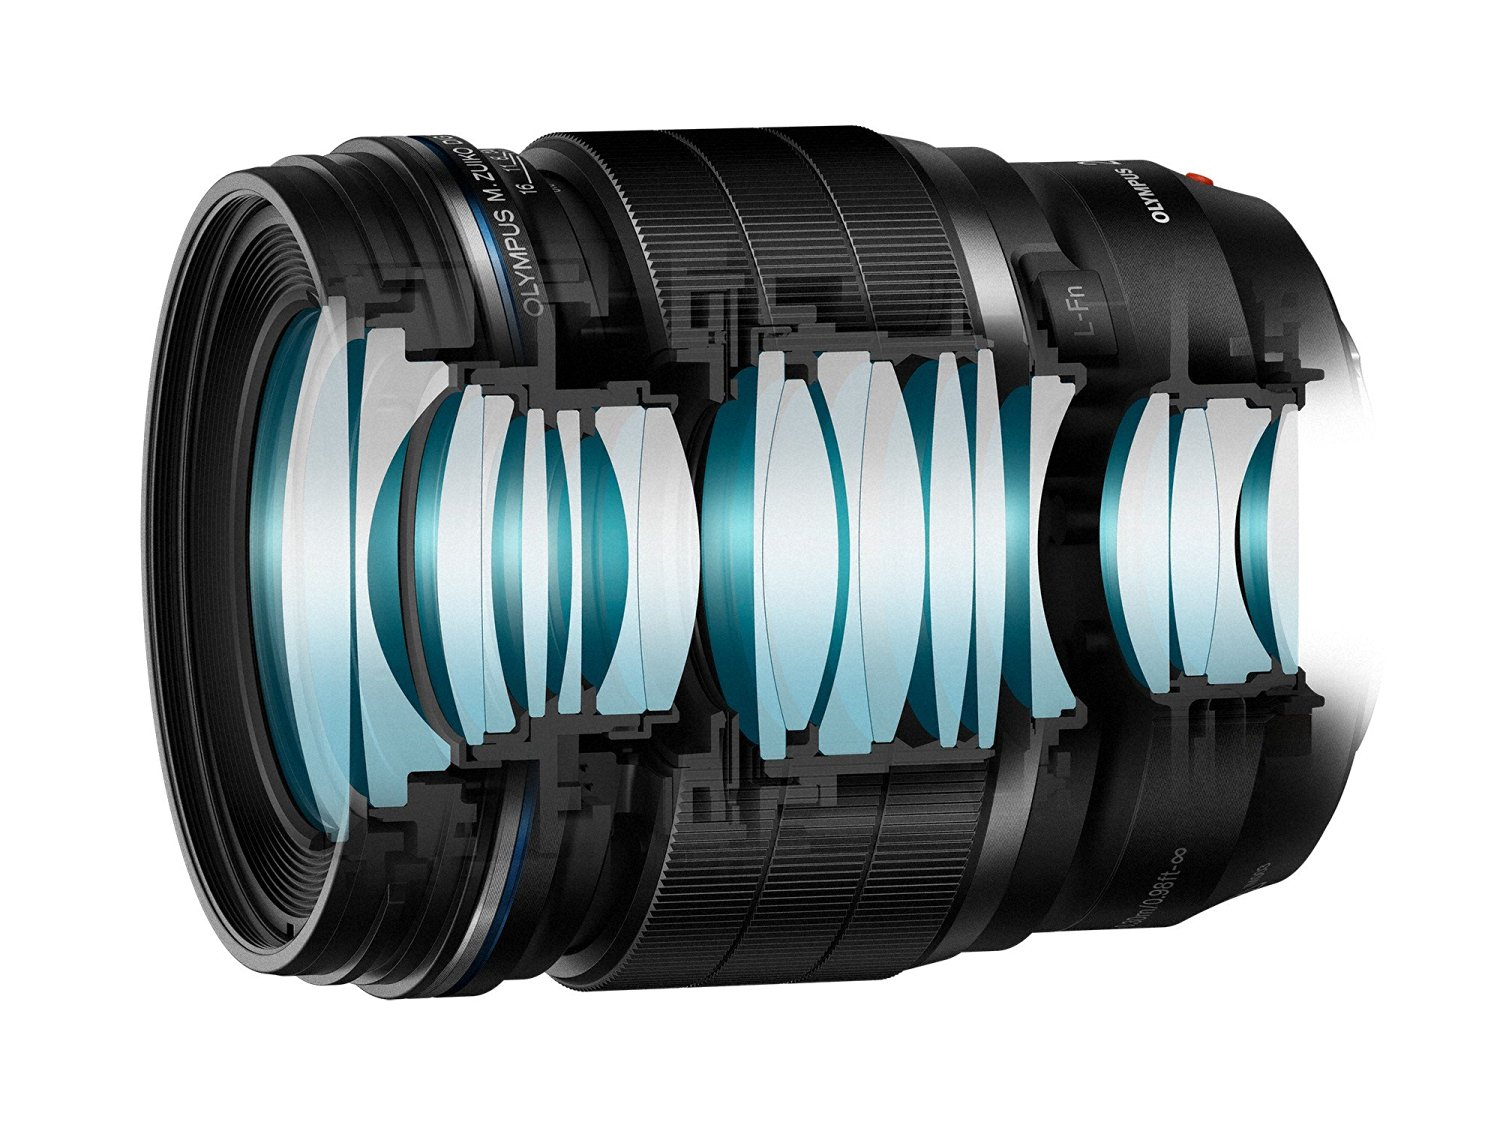 amazon product image of the internal structure of the olympus 25mm f2